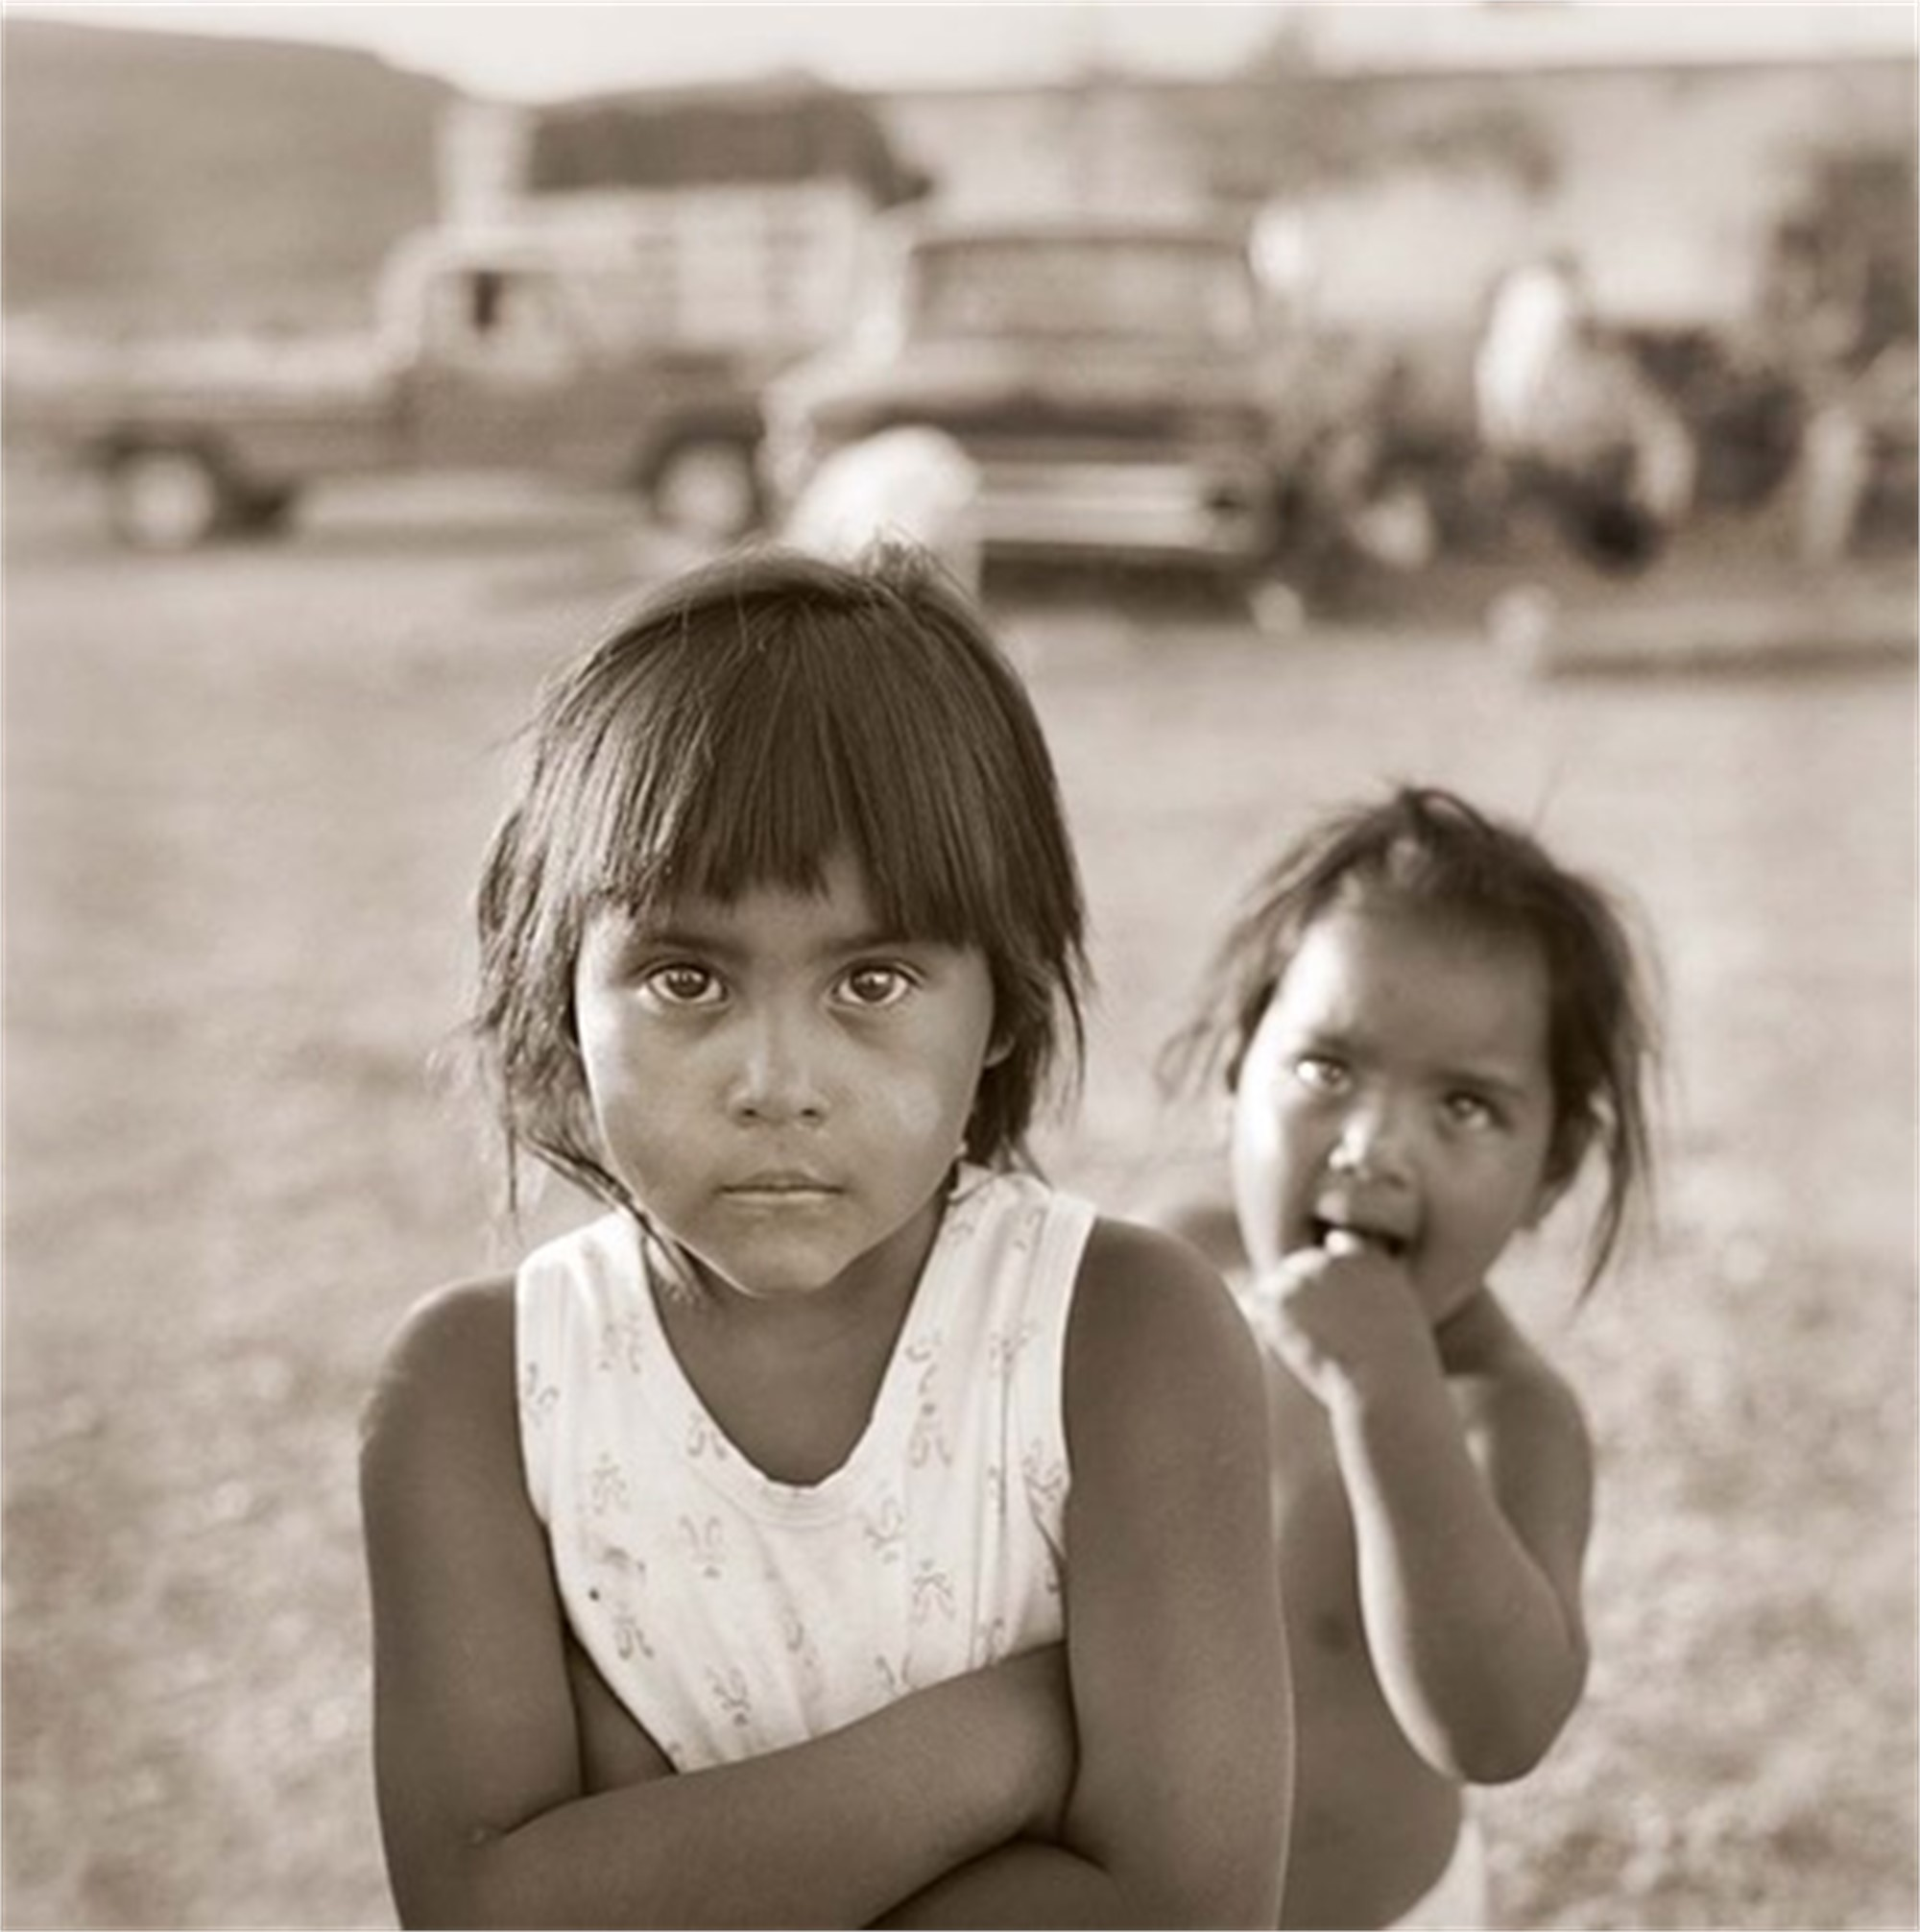 Sisters, Boquillas, Mexico by James H. Evans